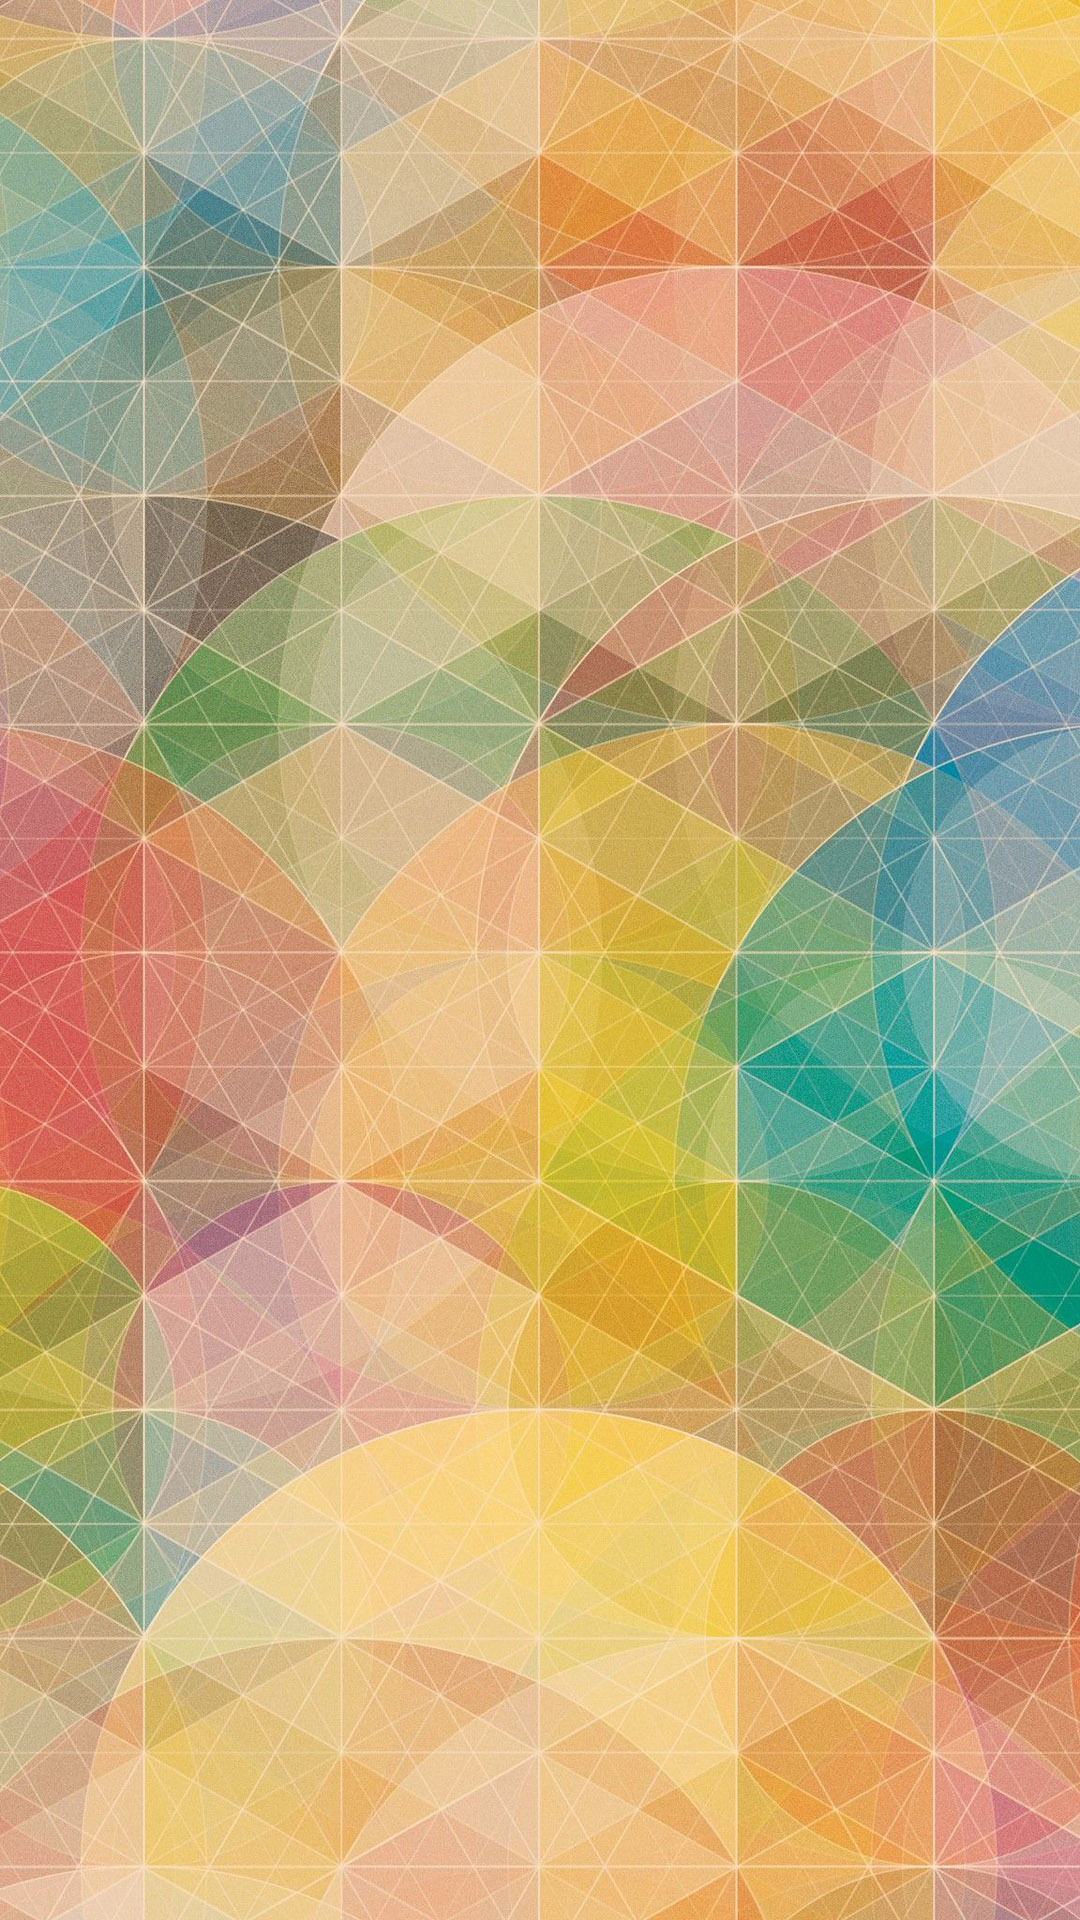 Colorful geometric patterns   Best HTC One M9 wallpaper 1080x1920